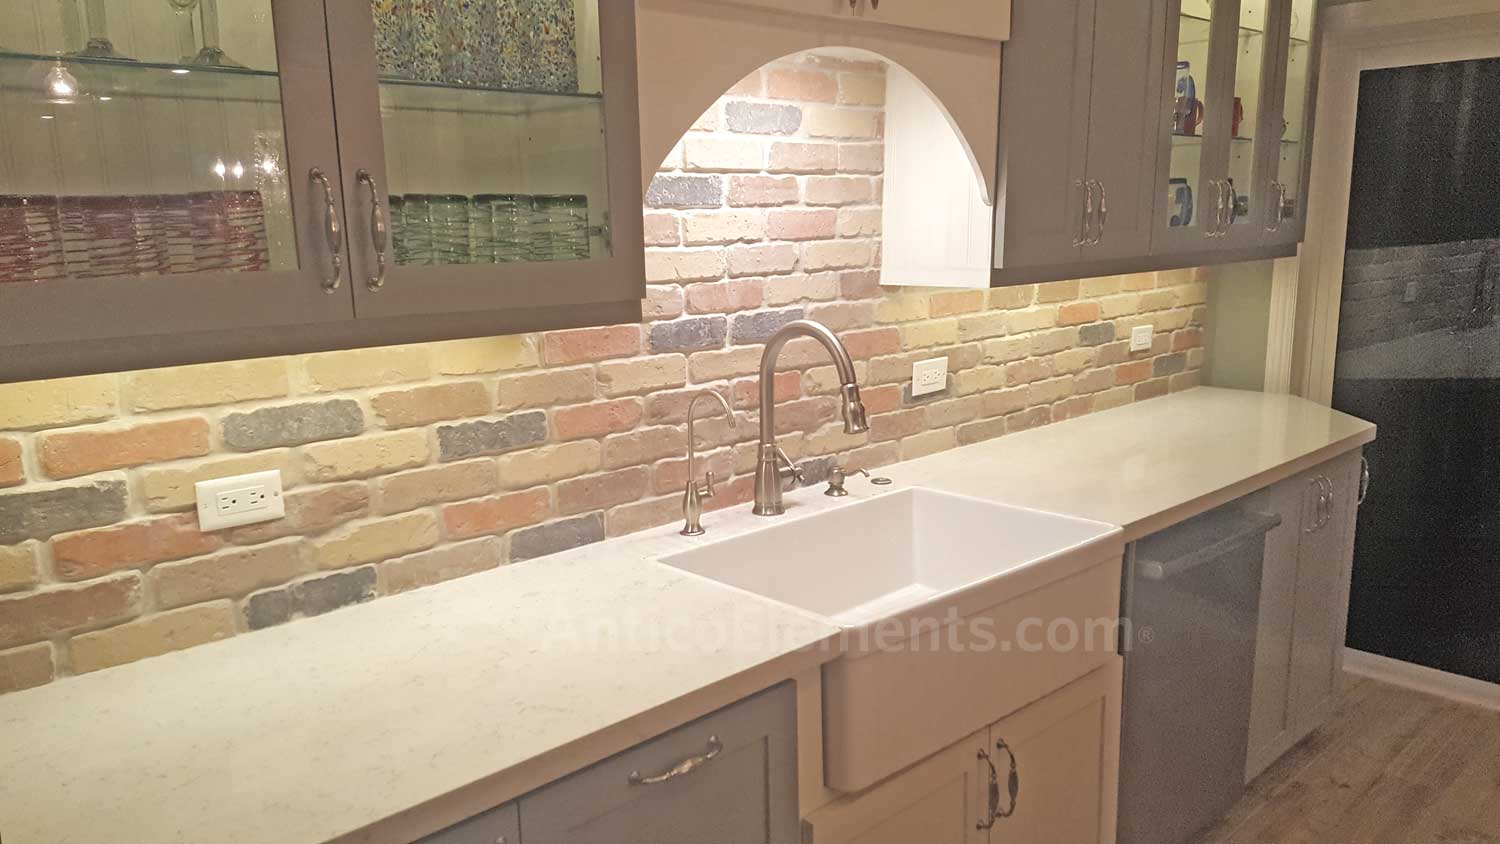 - The Beauty Of Brick Polyurethane Panels For Backsplash « Antico